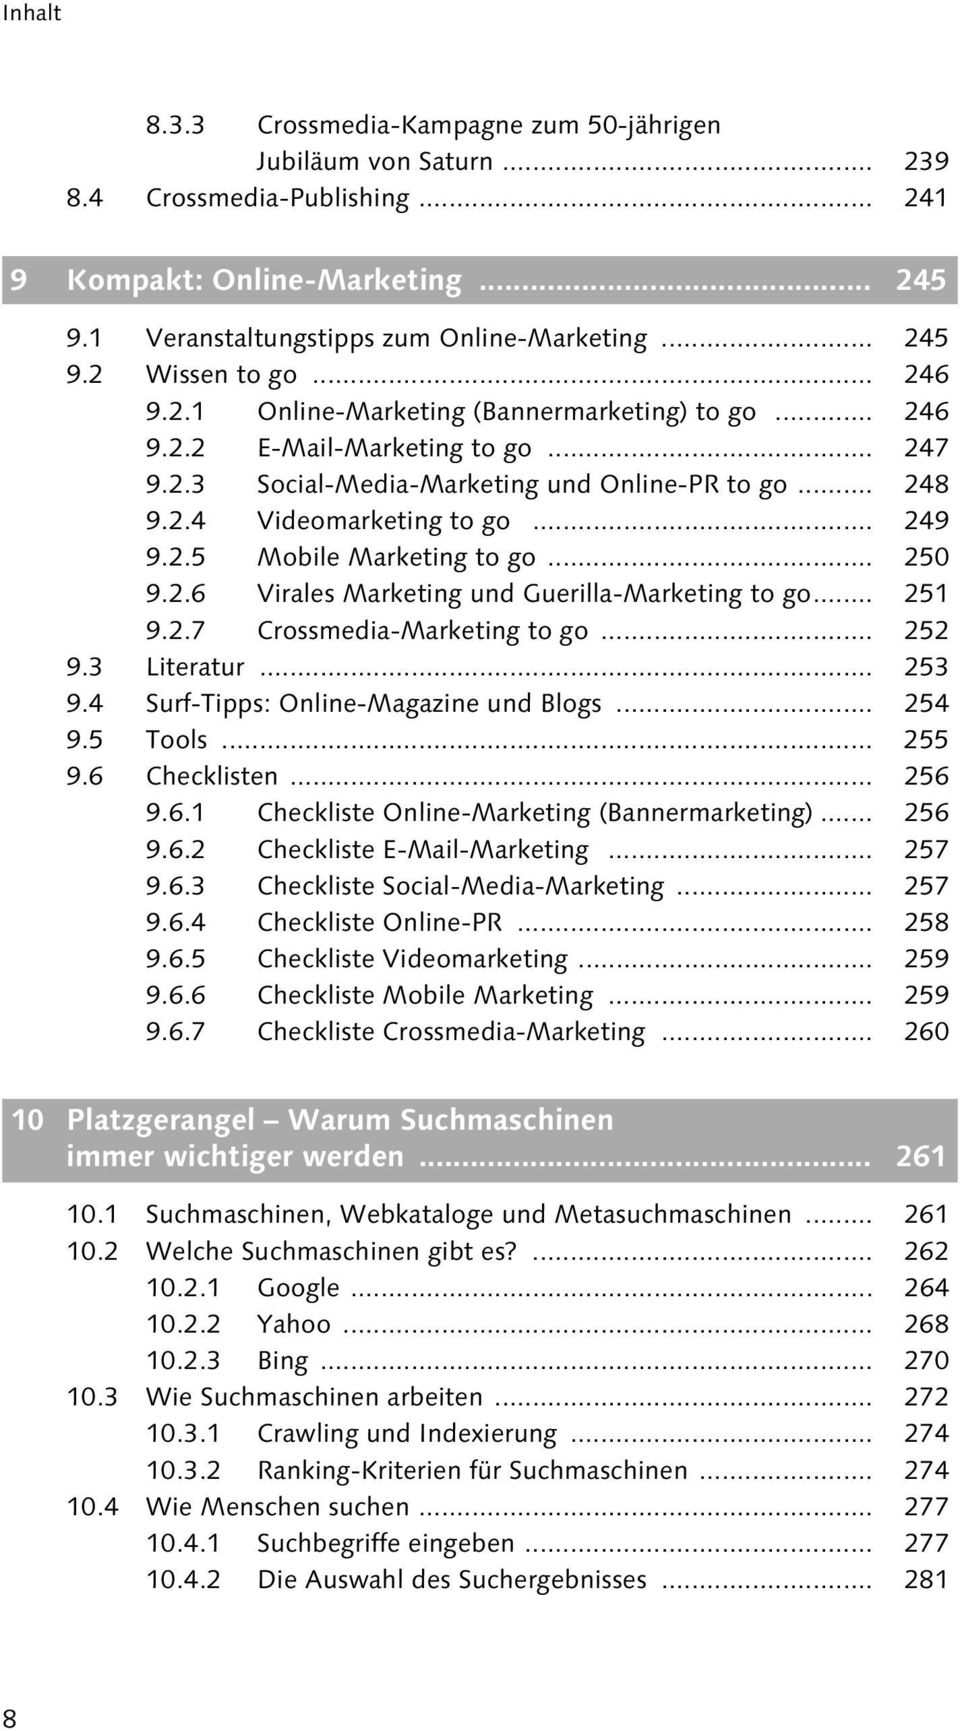 .. 250 9.2.6 Virales Marketing und Guerilla-Marketing to go... 251 9.2.7 Crossmedia-Marketing to go... 252 9.3 Literatur... 253 9.4 Surf-Tipps: Online-Magazine und Blogs... 254 9.5 Tools... 255 9.